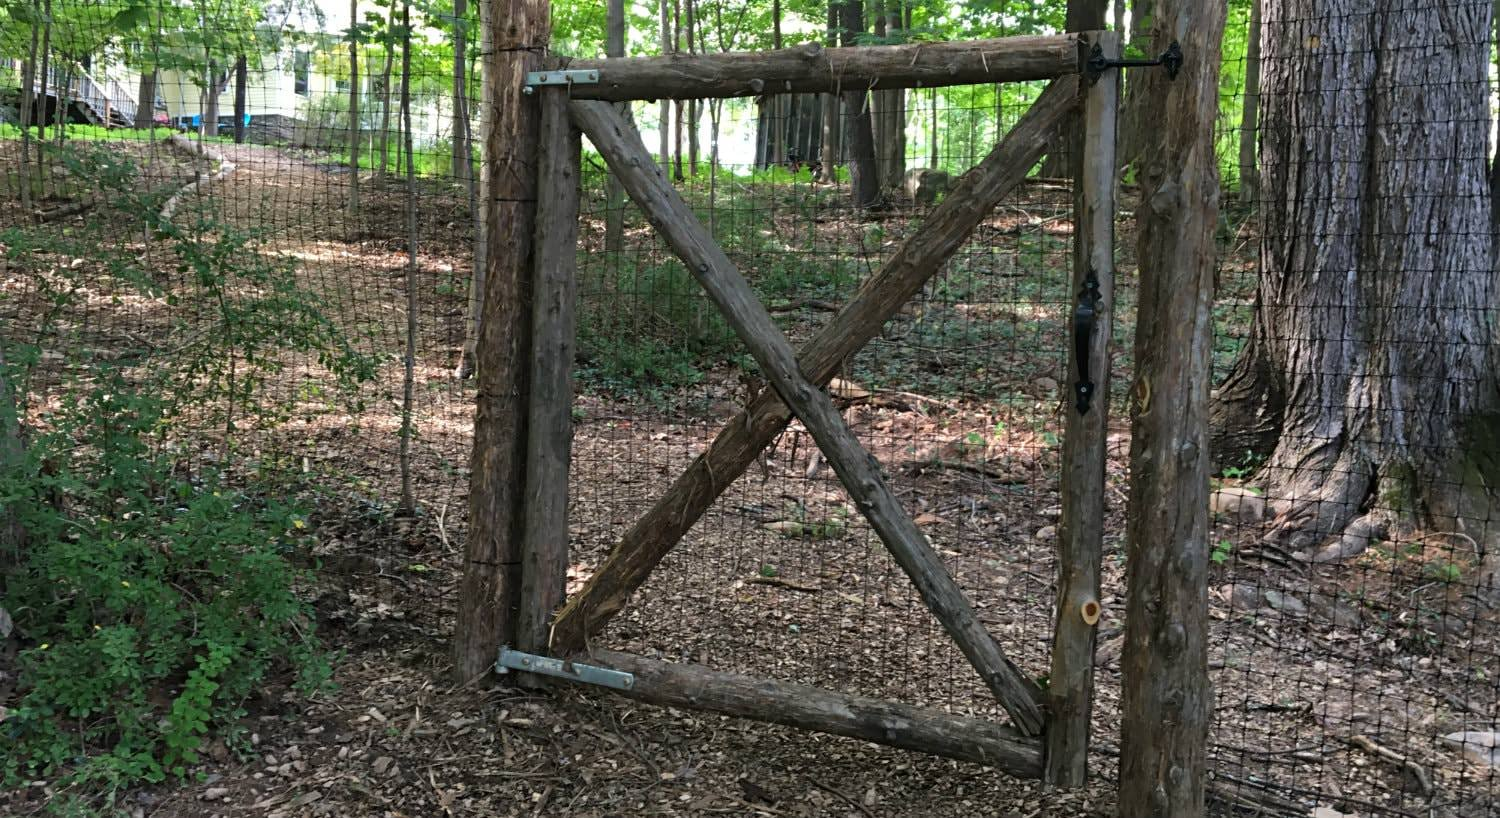 Rustic wood and wire fence and gate surrounded by trees, greenery and a path